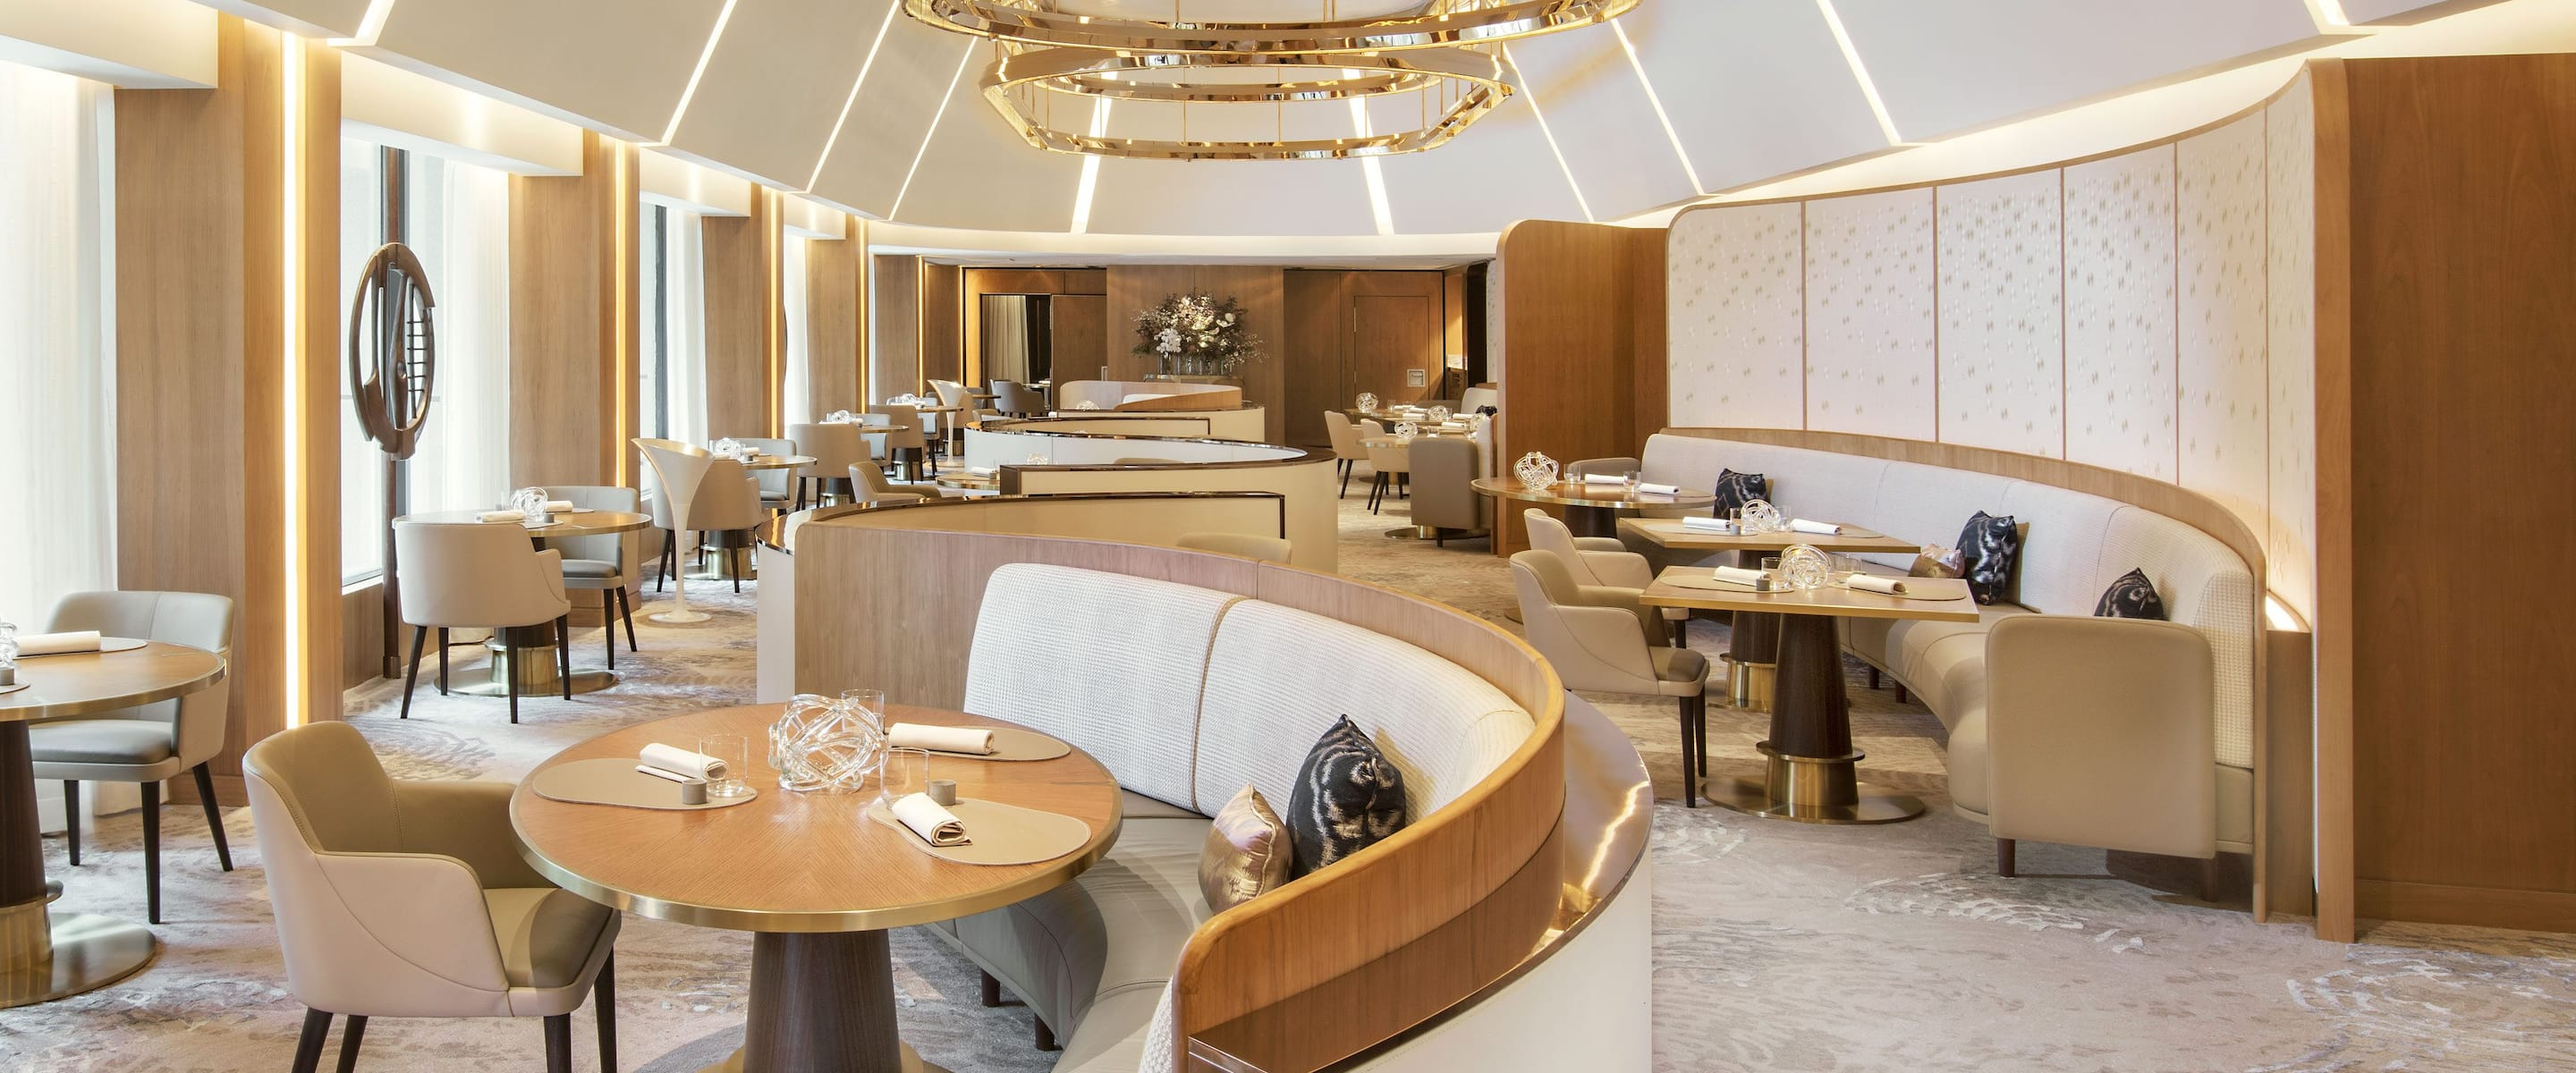 Best Restaurants Bars Lounges The Landmark Mandarin